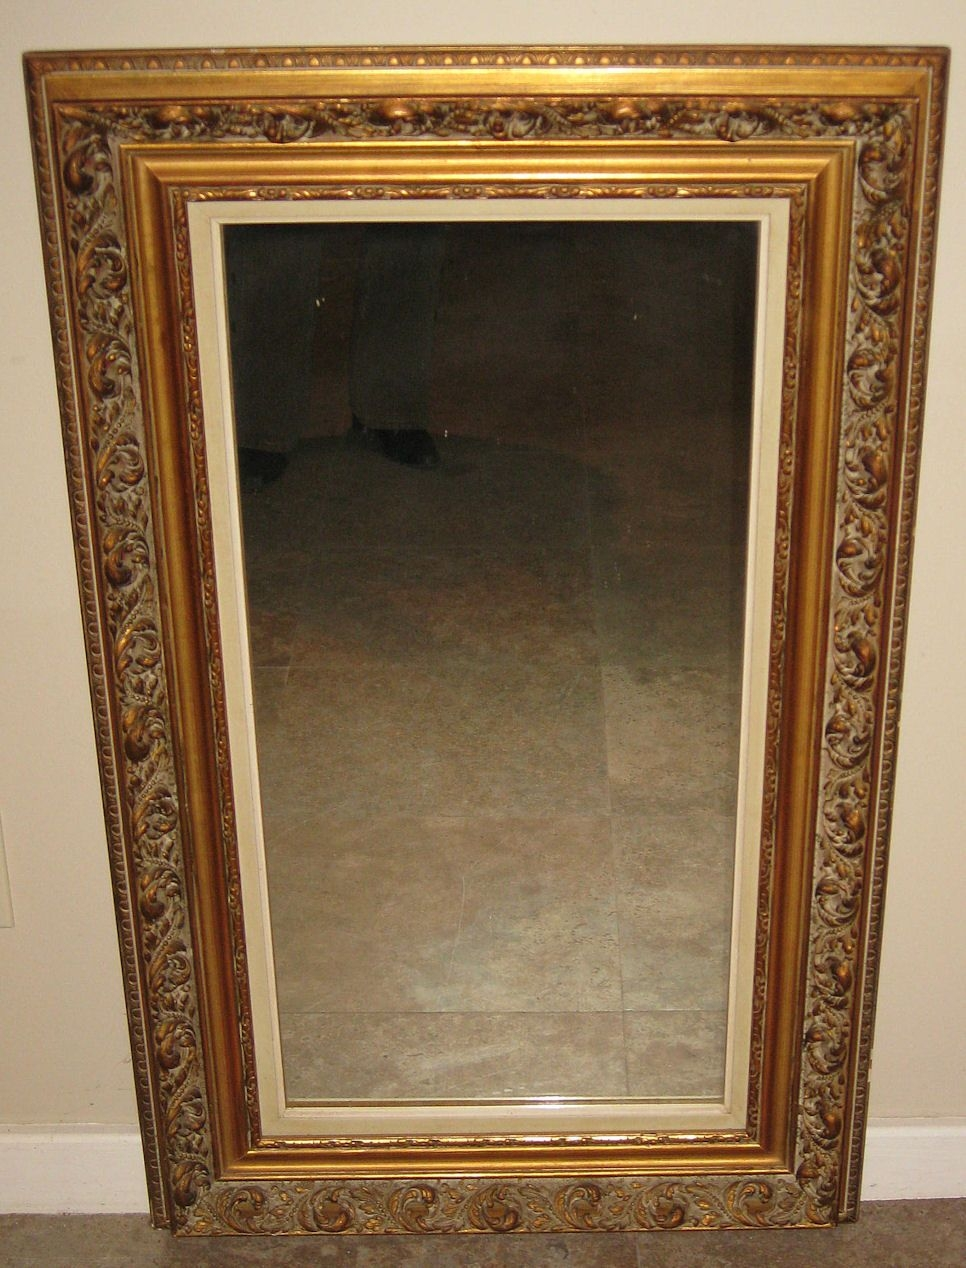 Superb Parcel Gilt Wood Framed Mirror From Dynastycollections On With Large Gilt Framed Mirror (Image 14 of 15)